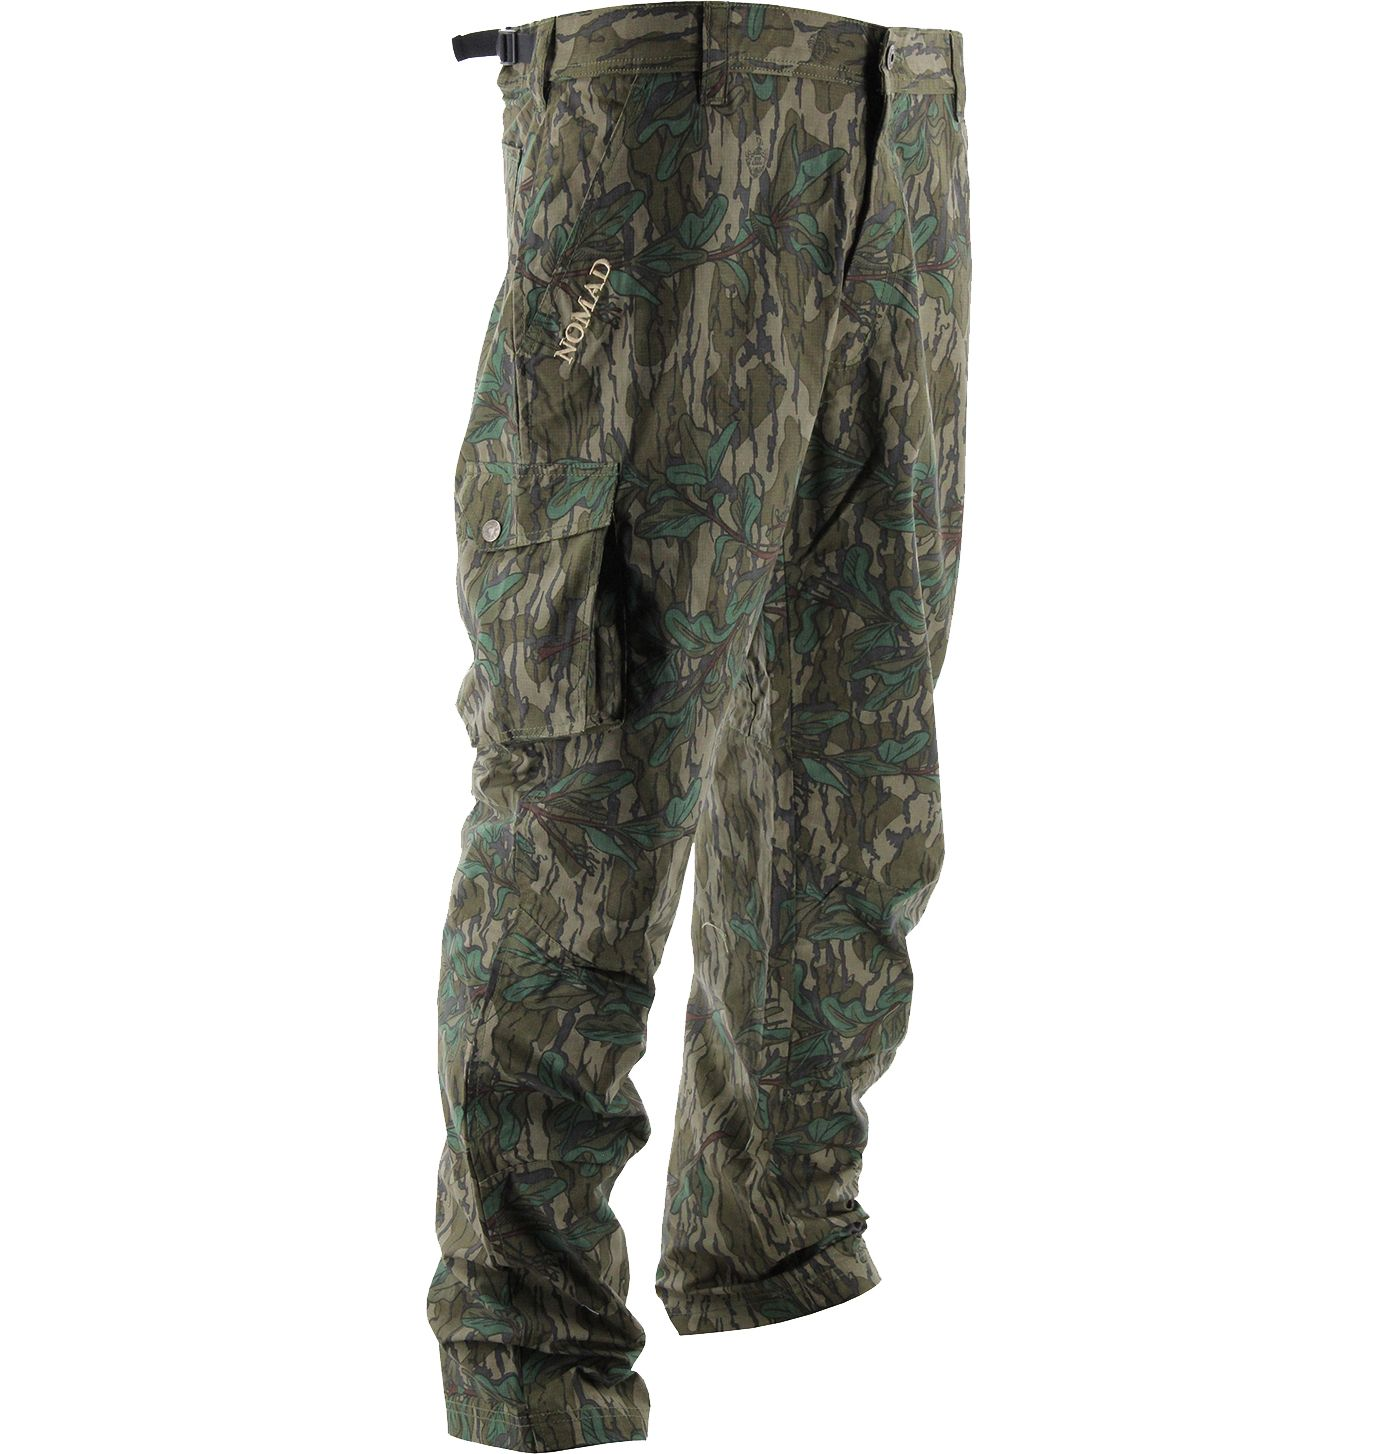 NOMAD Men's NWTF Turkey Hunting Pants